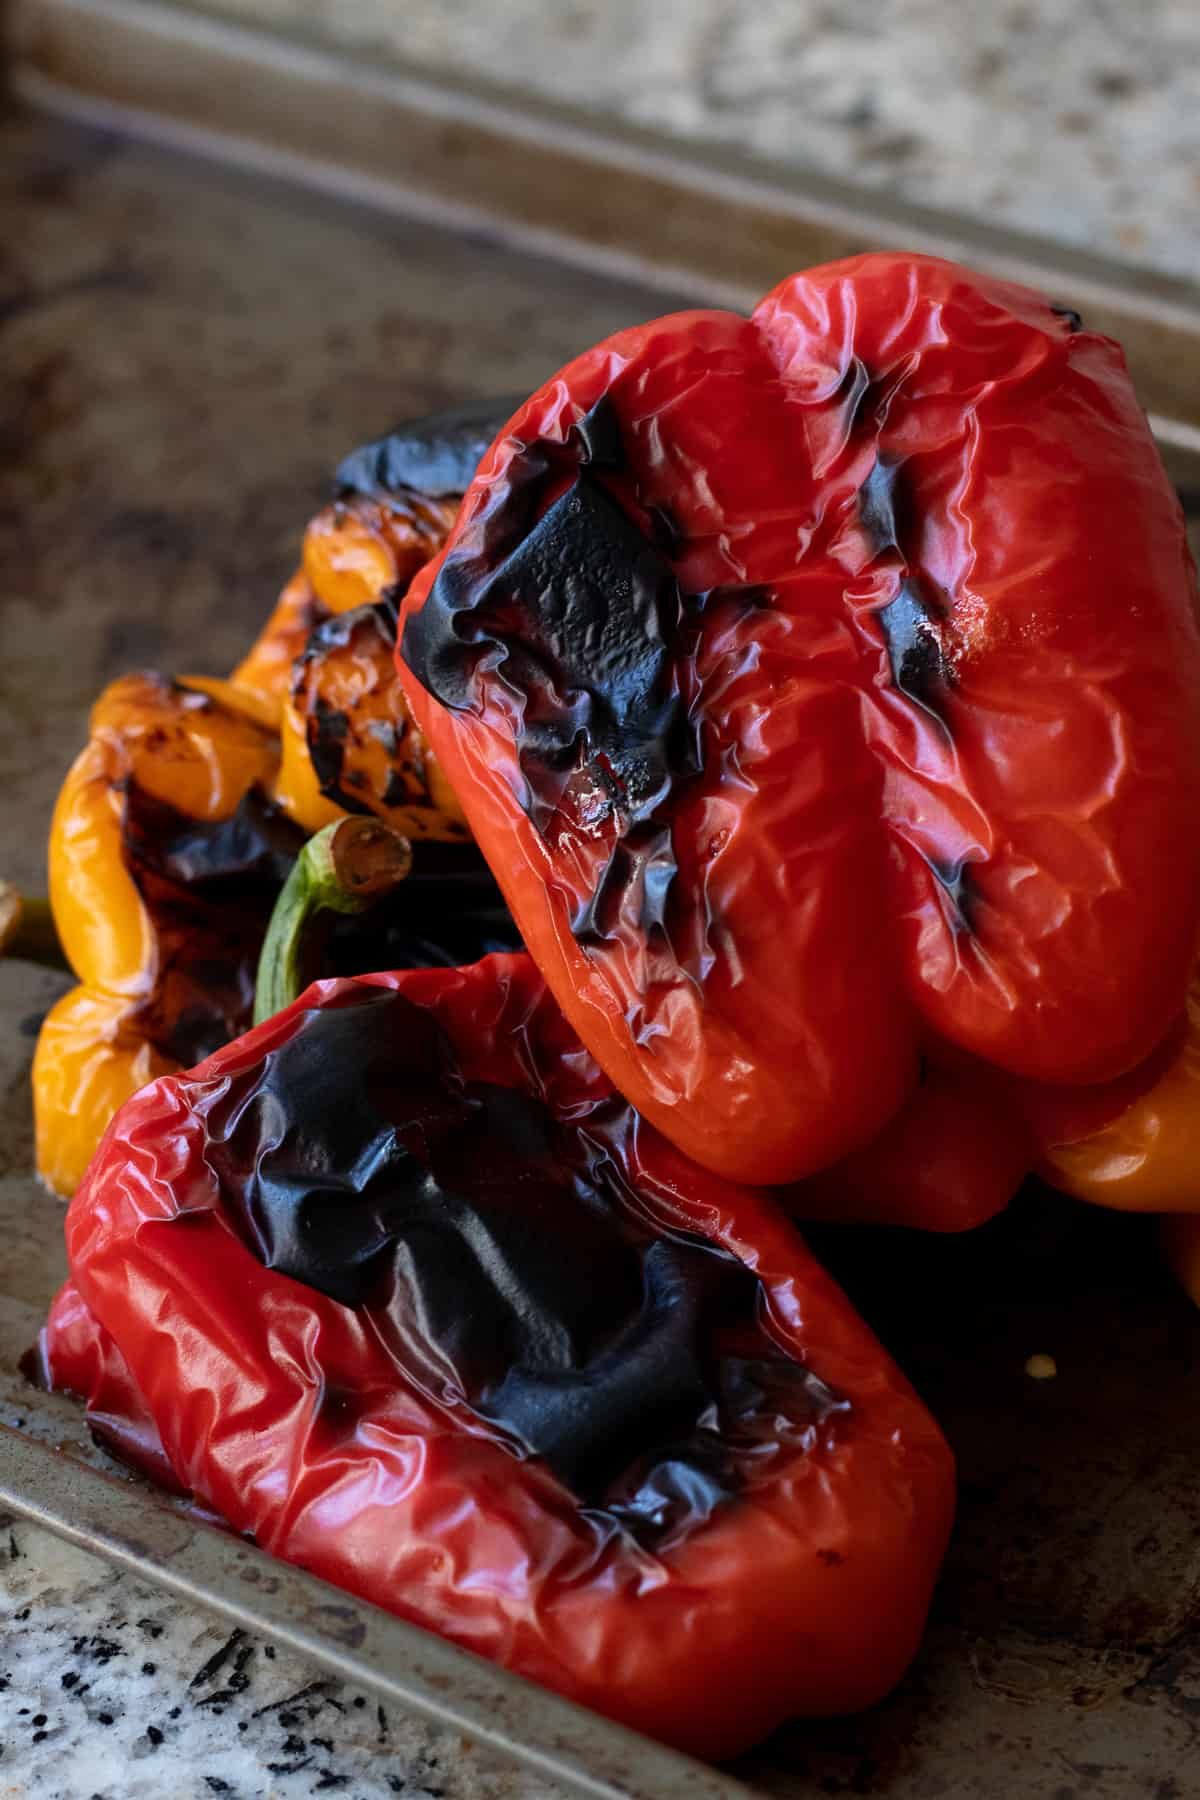 Roasted Red Peppers with Charred Skin on Baking Sheet